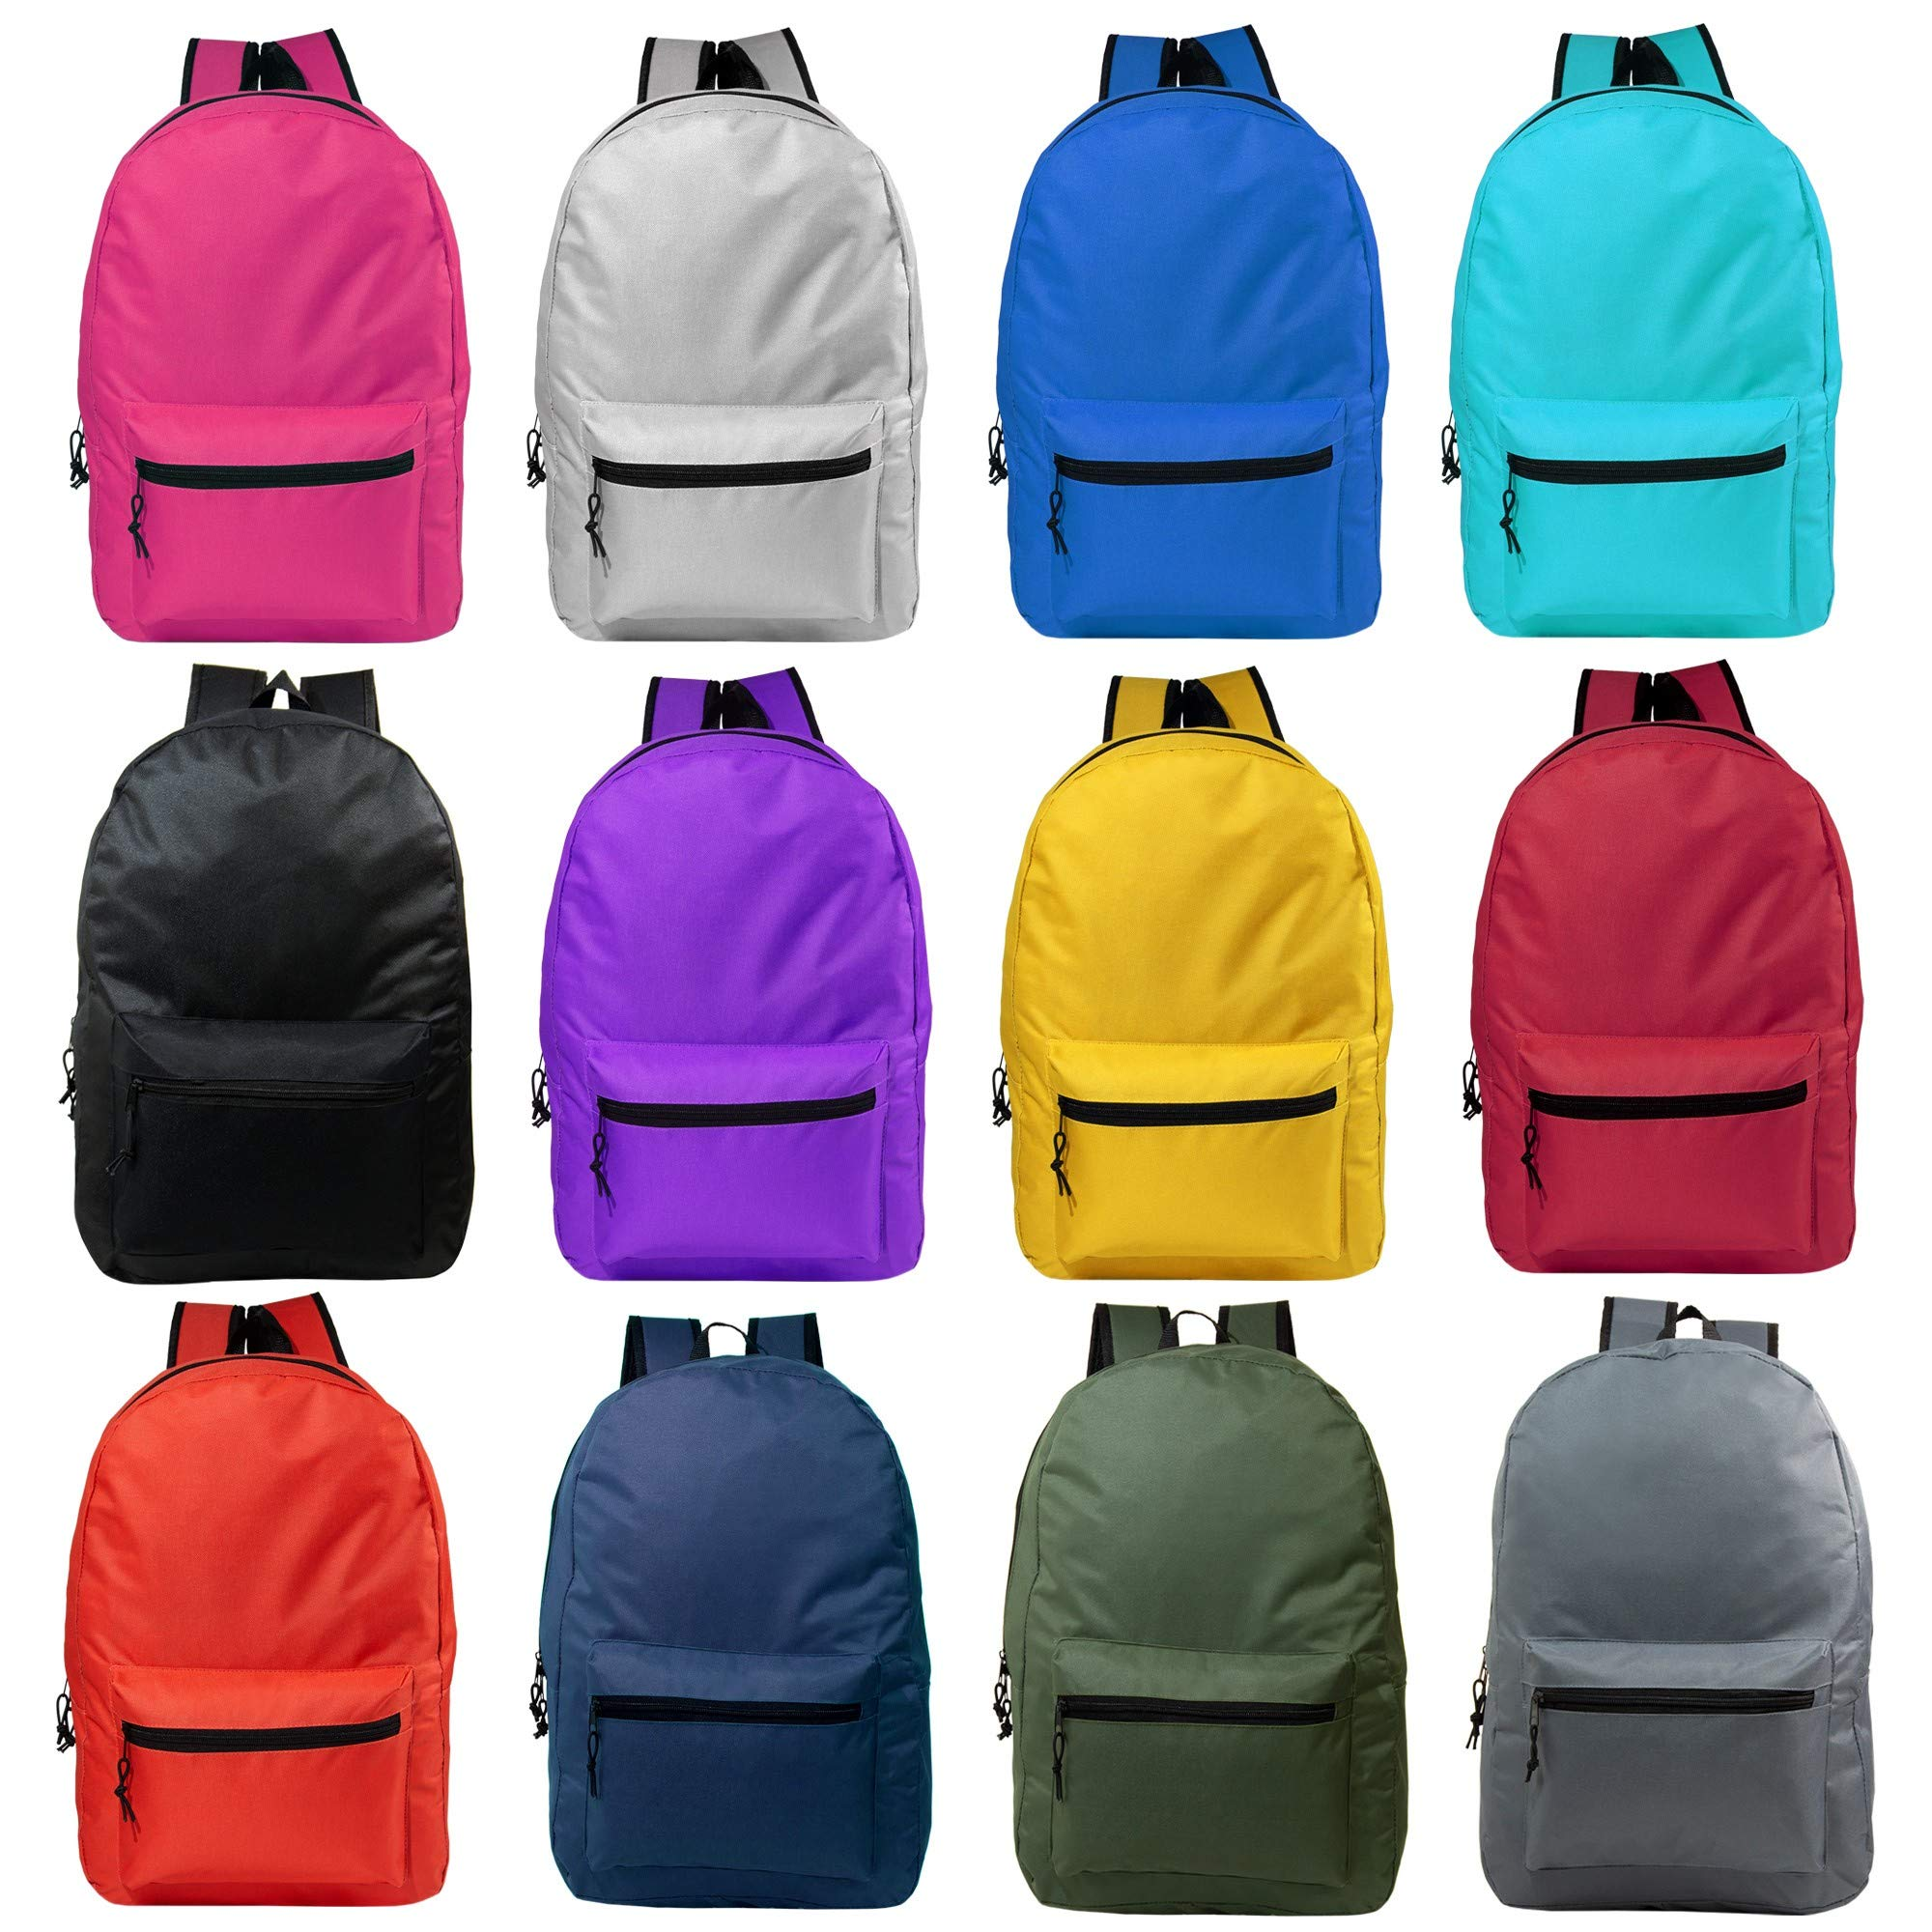 19'' Wholesale Basic Backpacks in 12 Assorted Colors - Bulk Case of 24 Bookbags